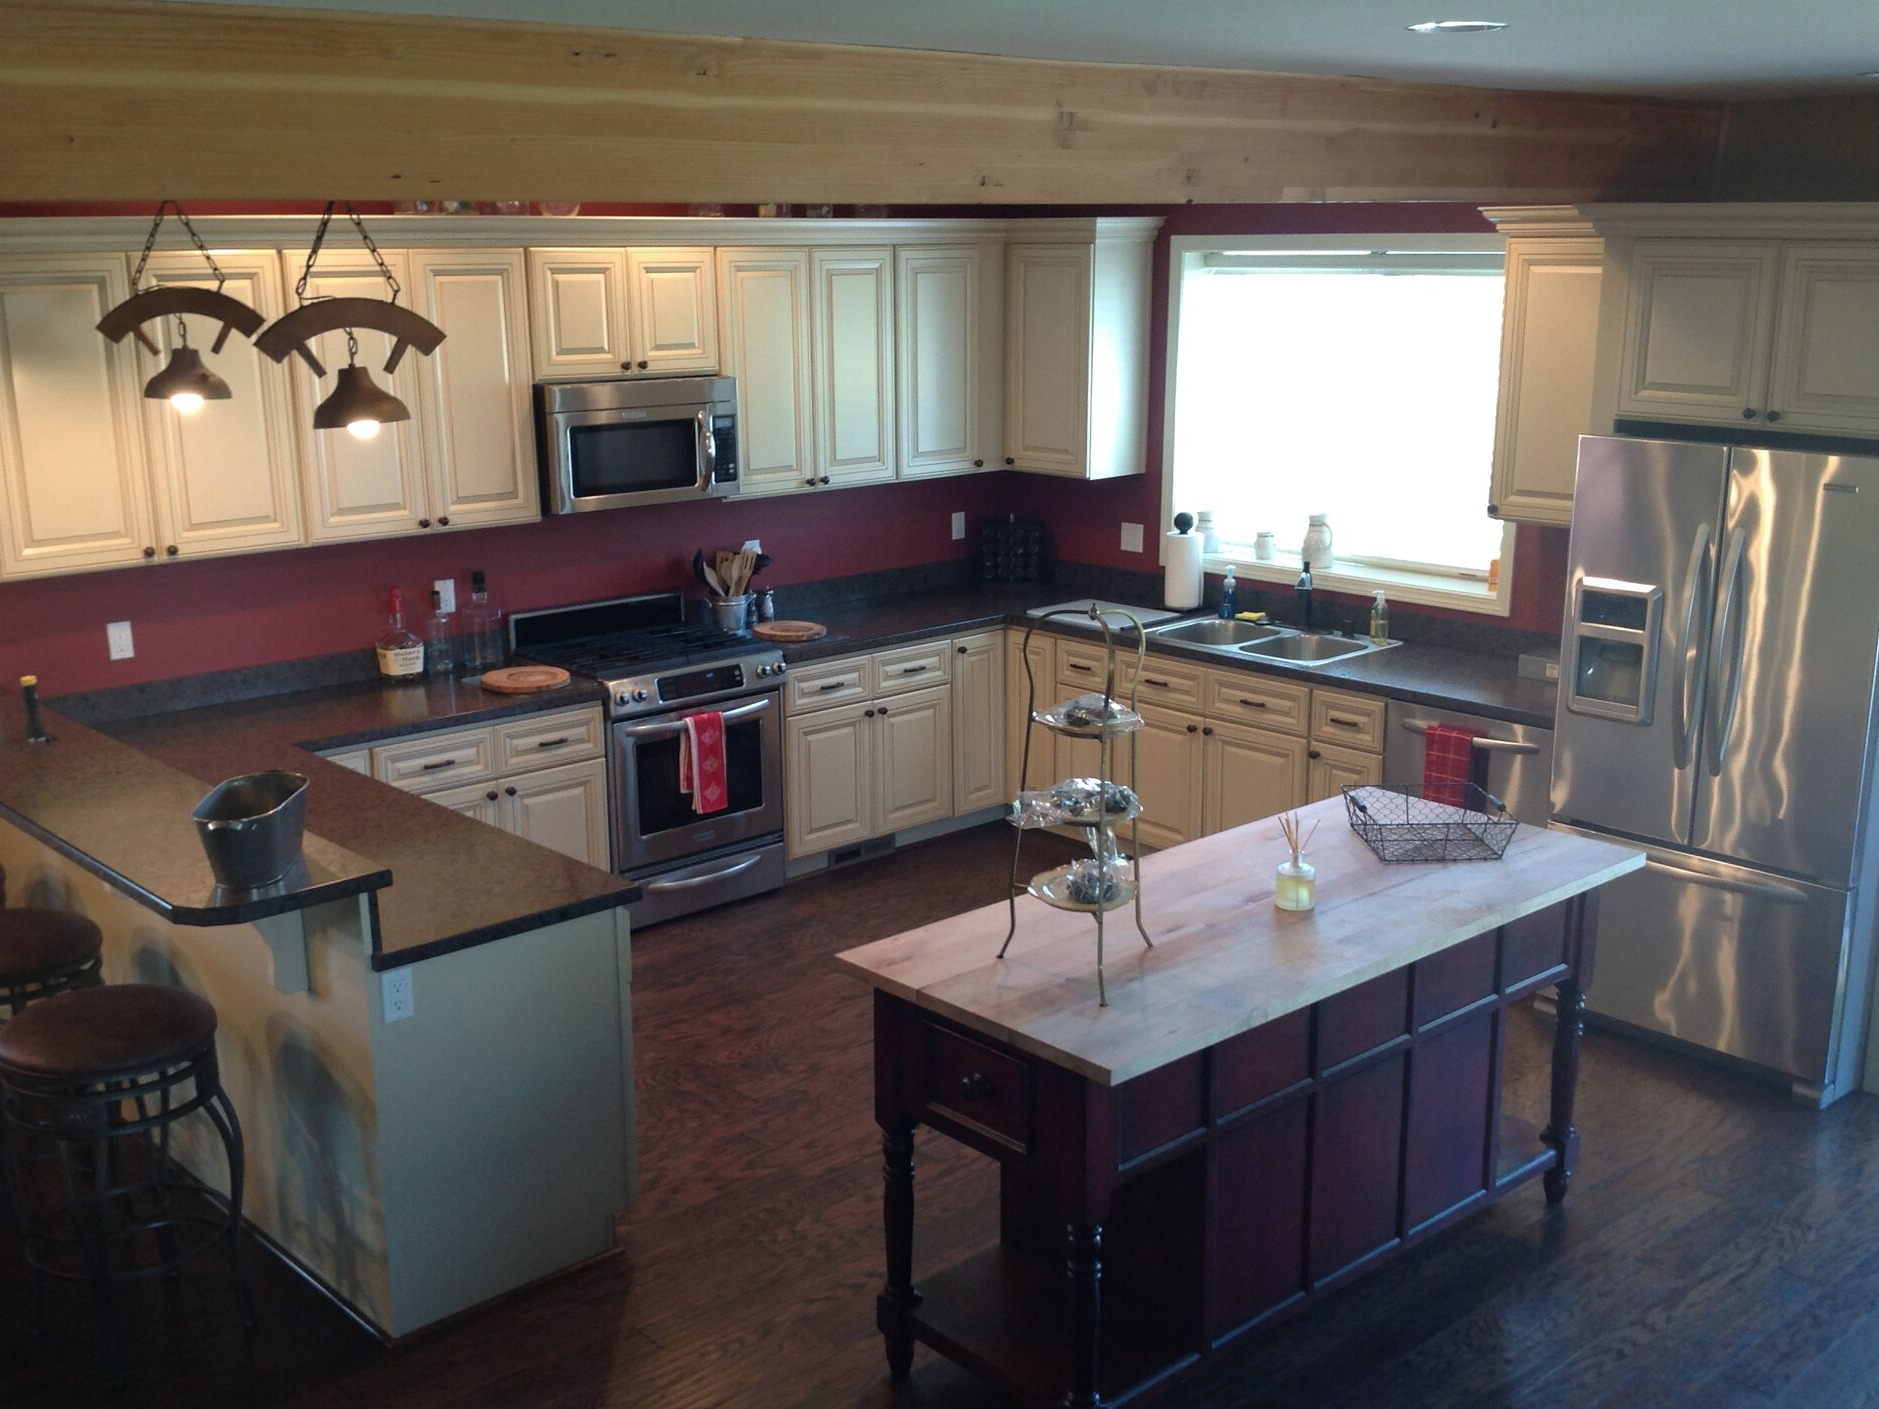 rr custom exteriors vancouver wa outdoor living spaces kitchen